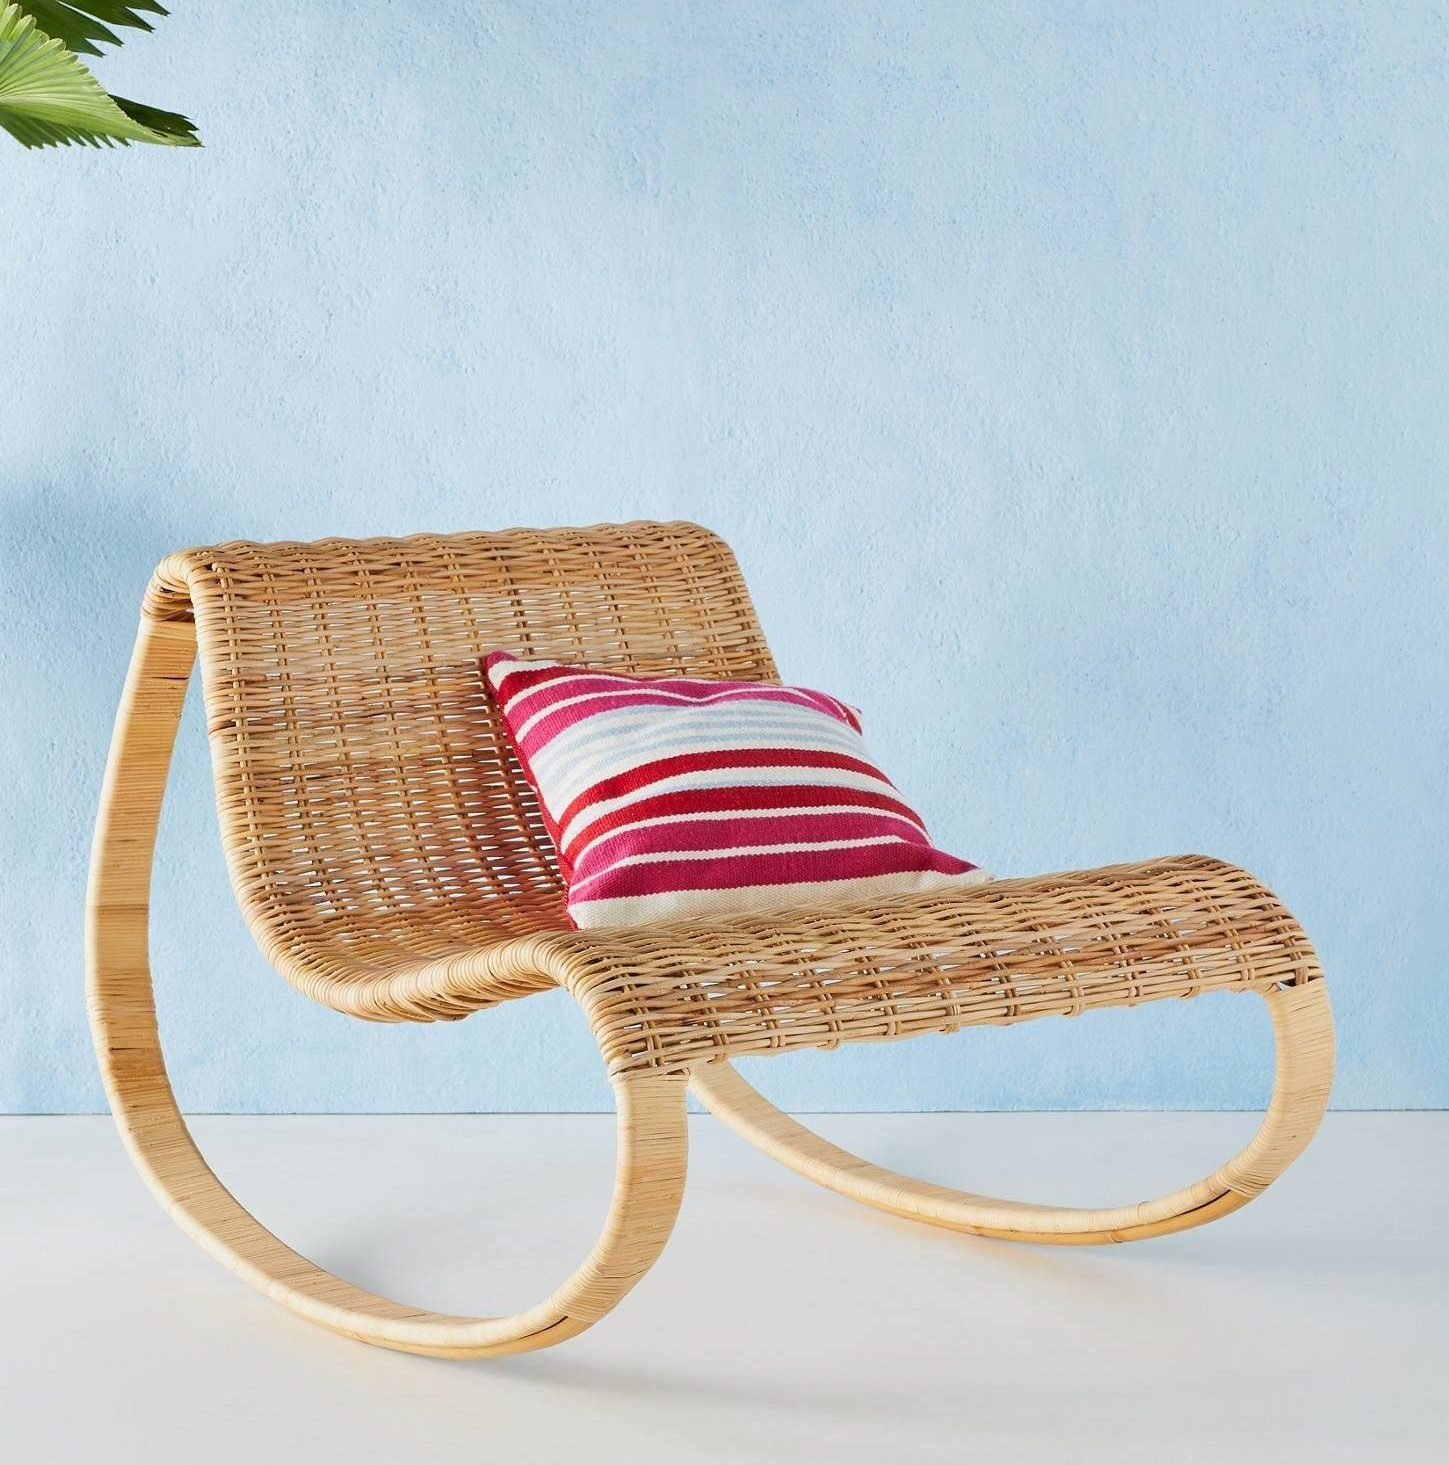 Wicker Rattan Curved Rocking Chair Bohemian Patio Outdoor Seating